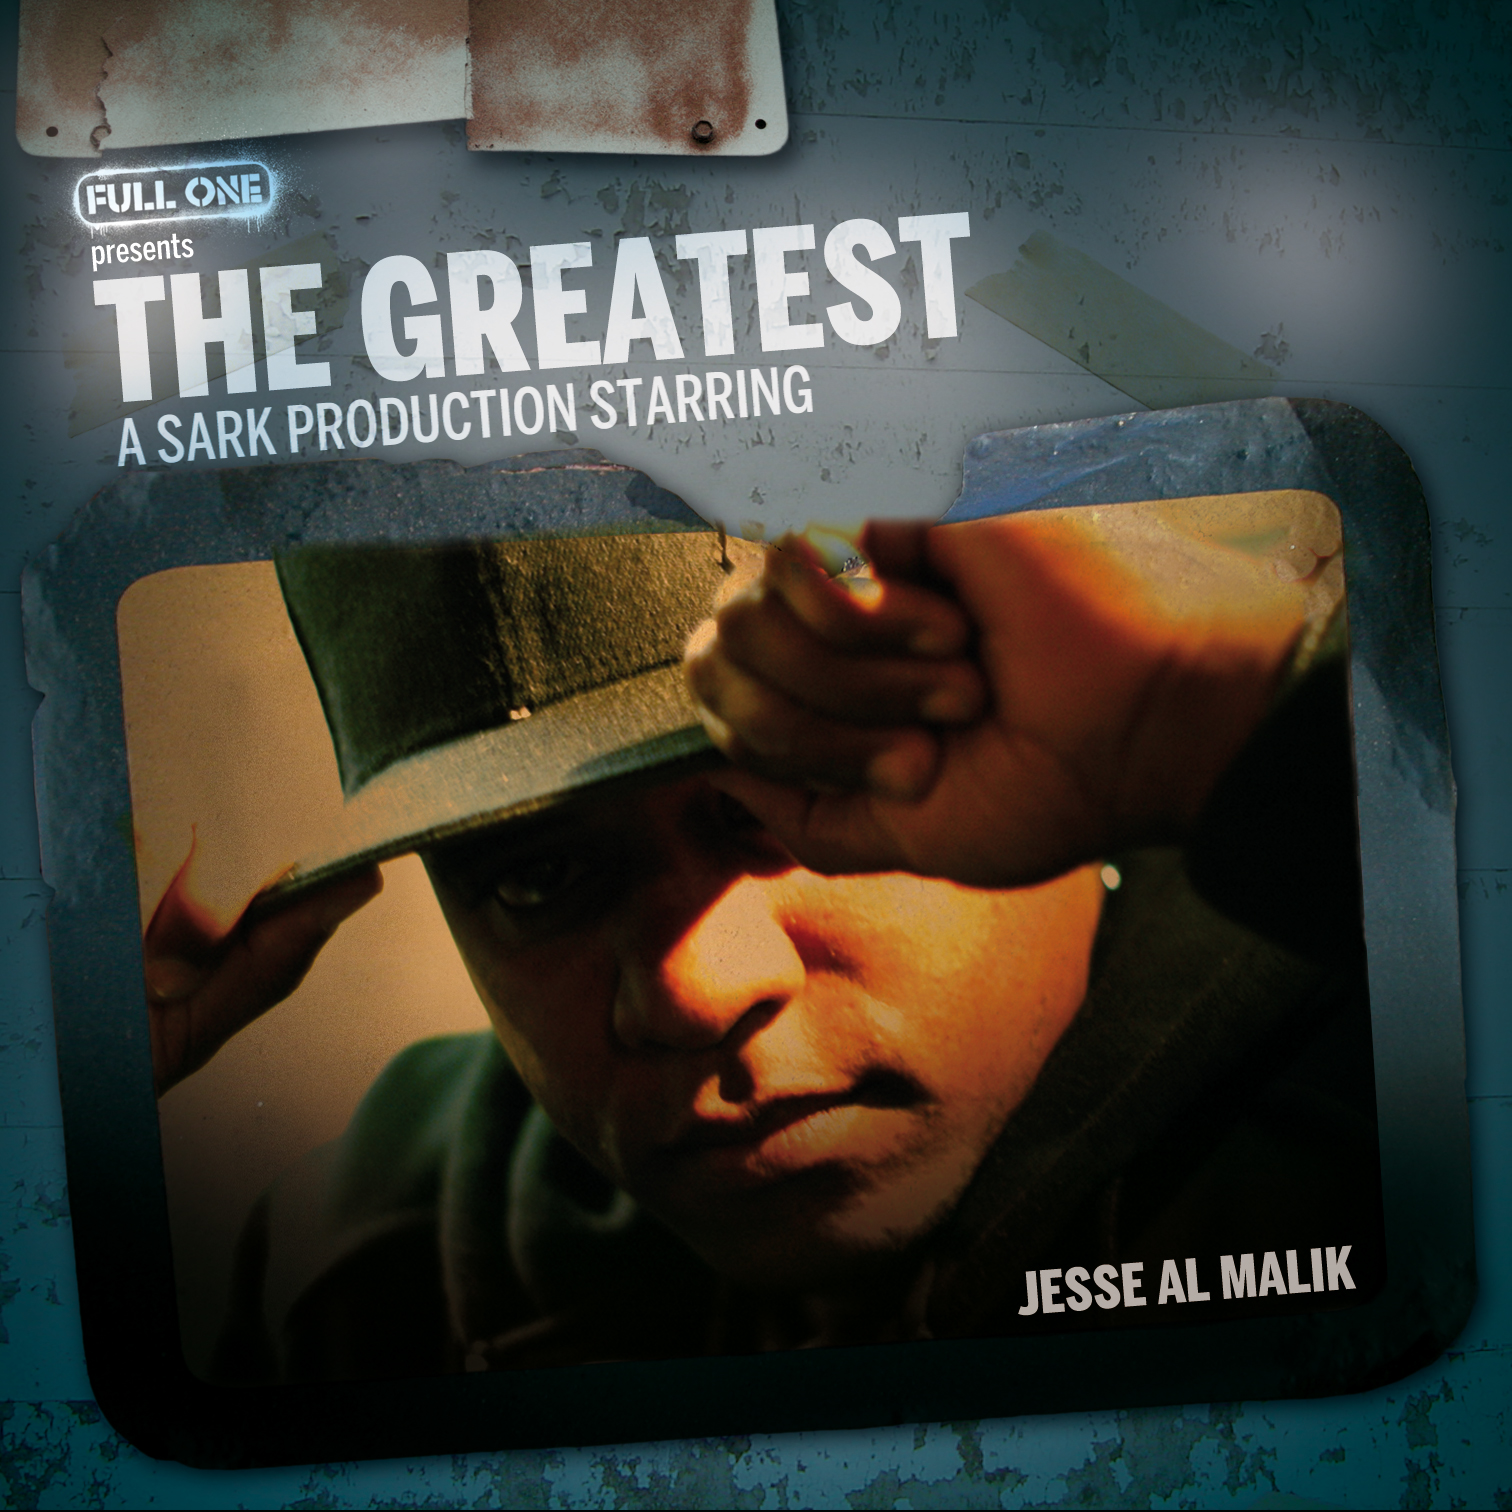 jesse-al-malik-the-greatest